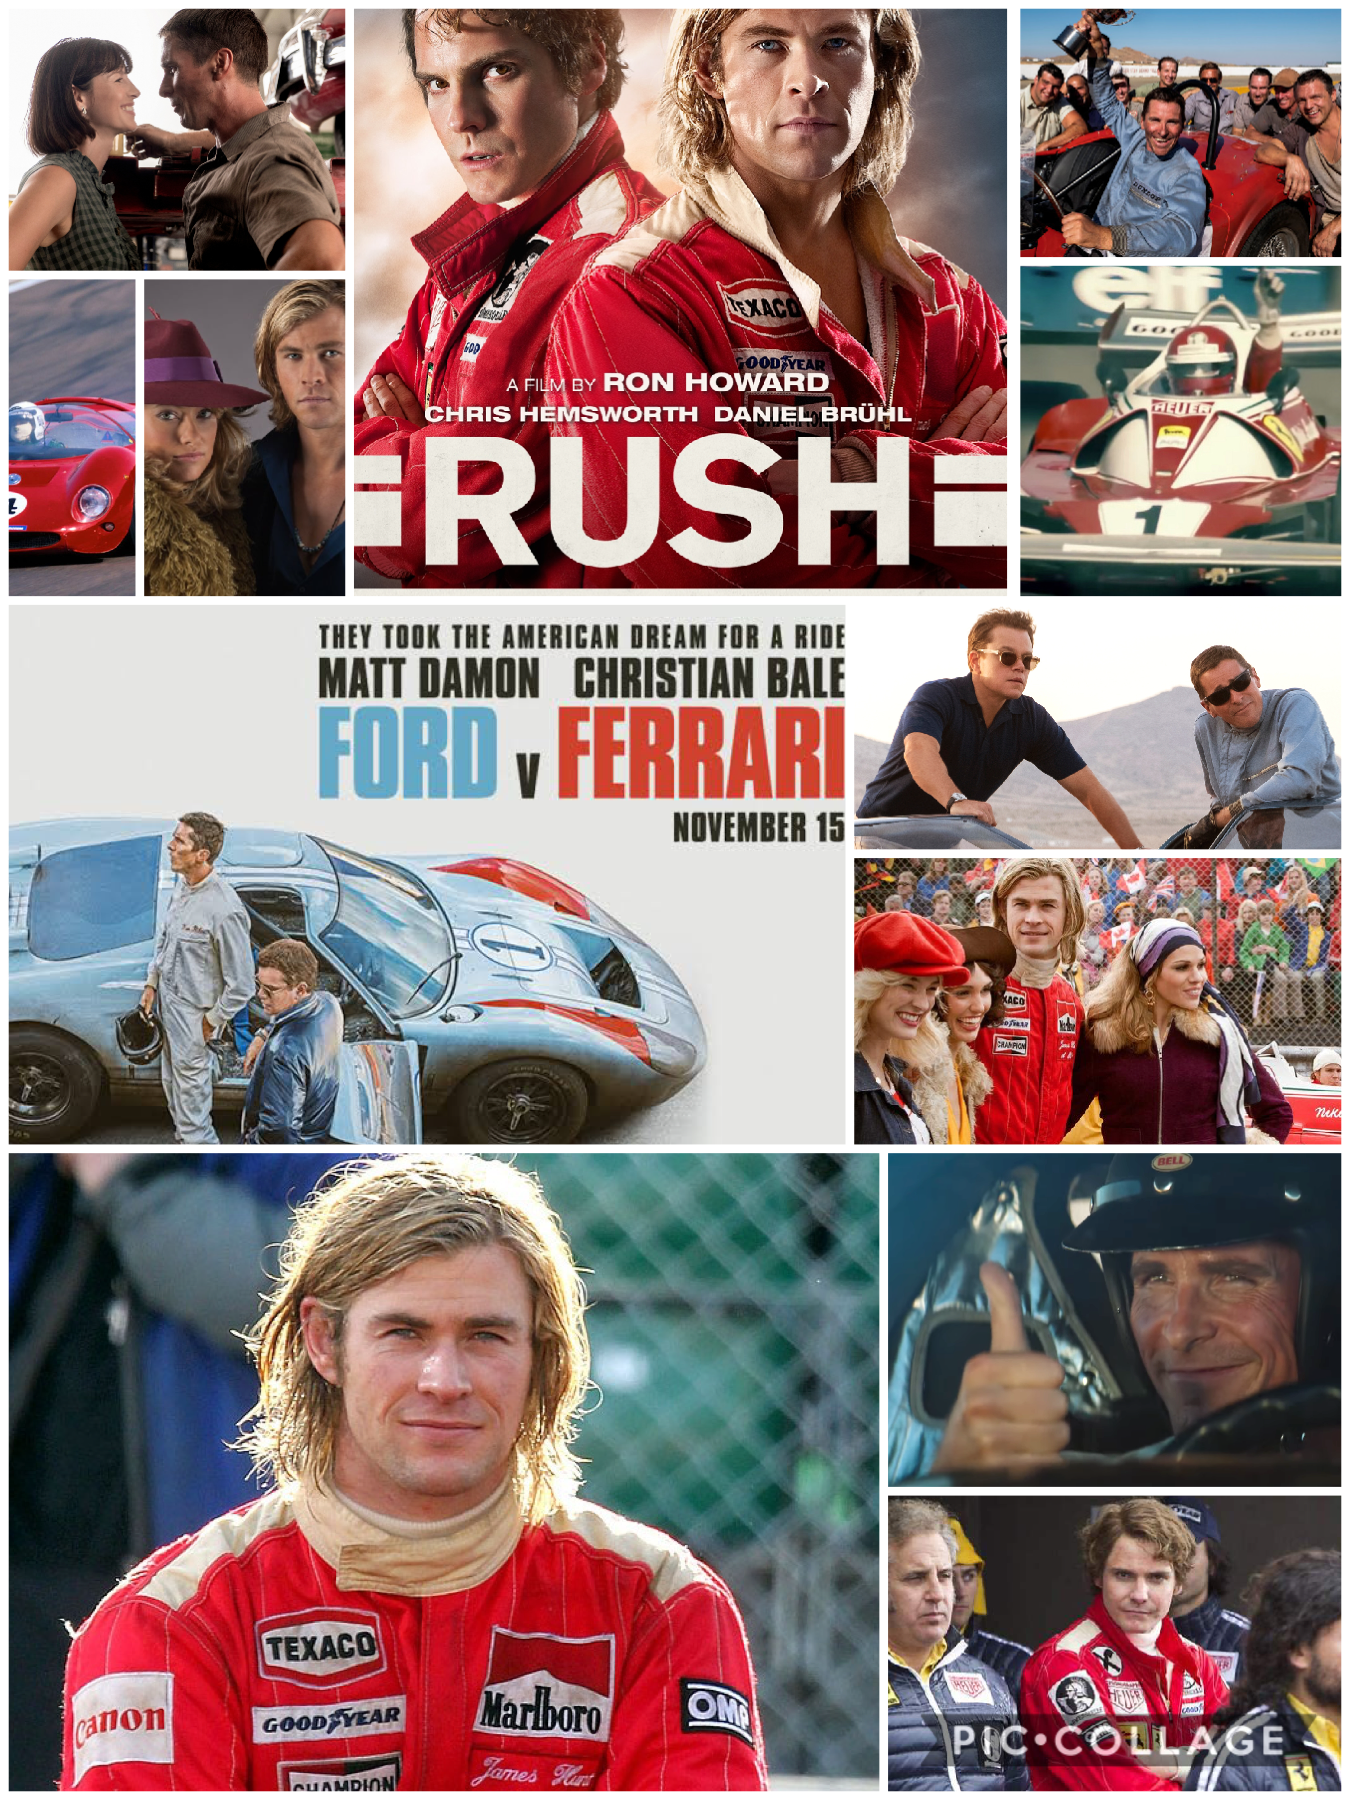 Ford V a Ferrari and Rush